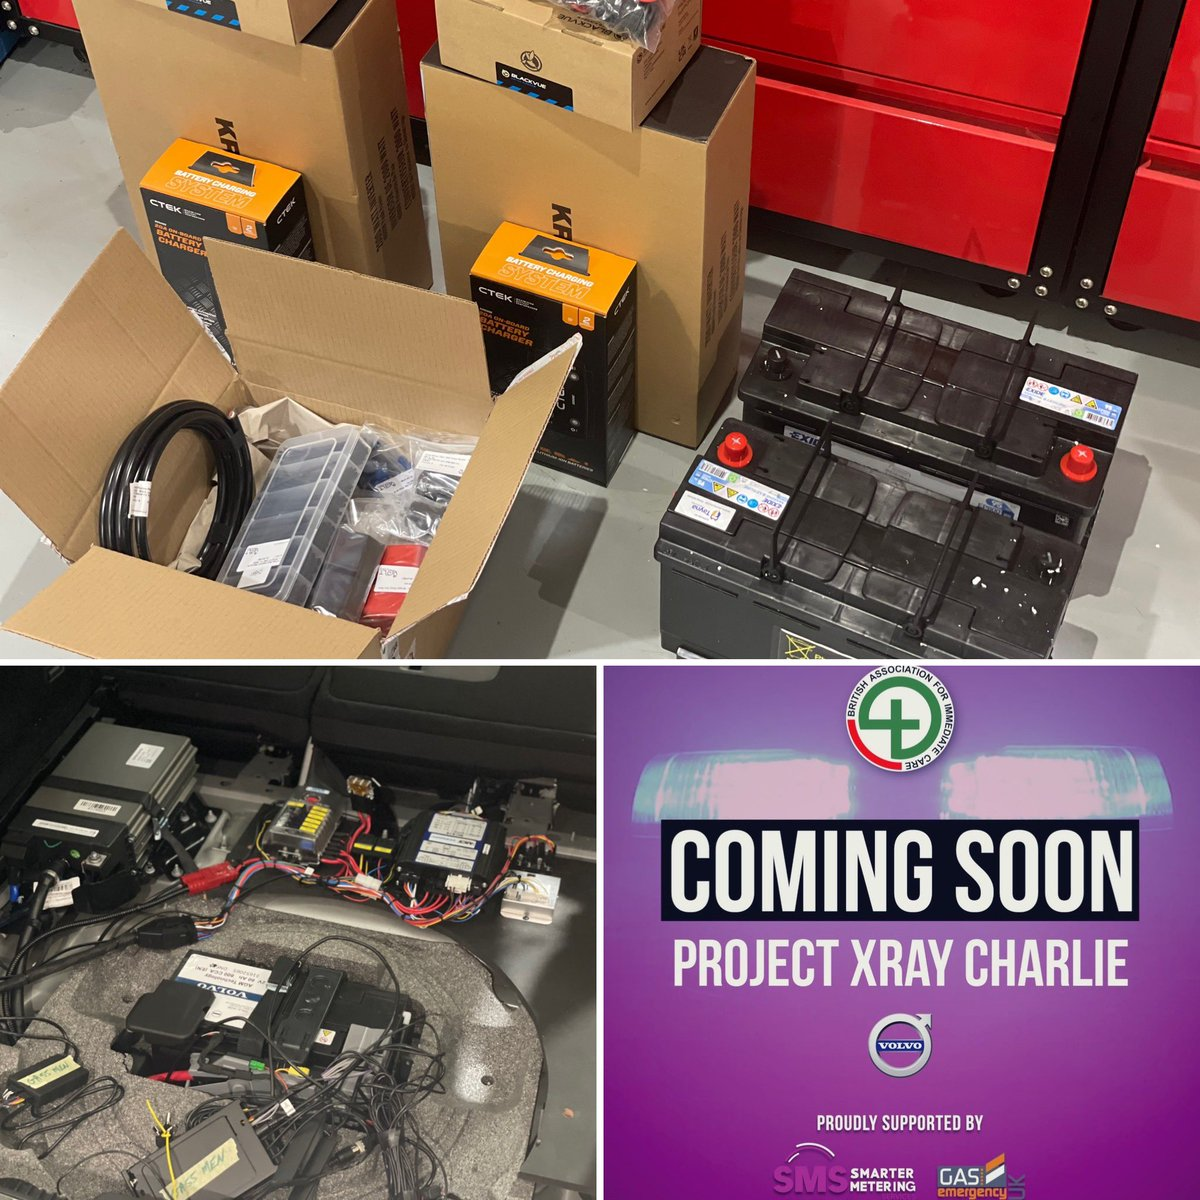 Our Dave's had his final delivery today for #projectxraycharlie! He's deep into installing ensuring they have back up power / inverters and dash cameras 📸 💥 #wontgoflatonjobs!